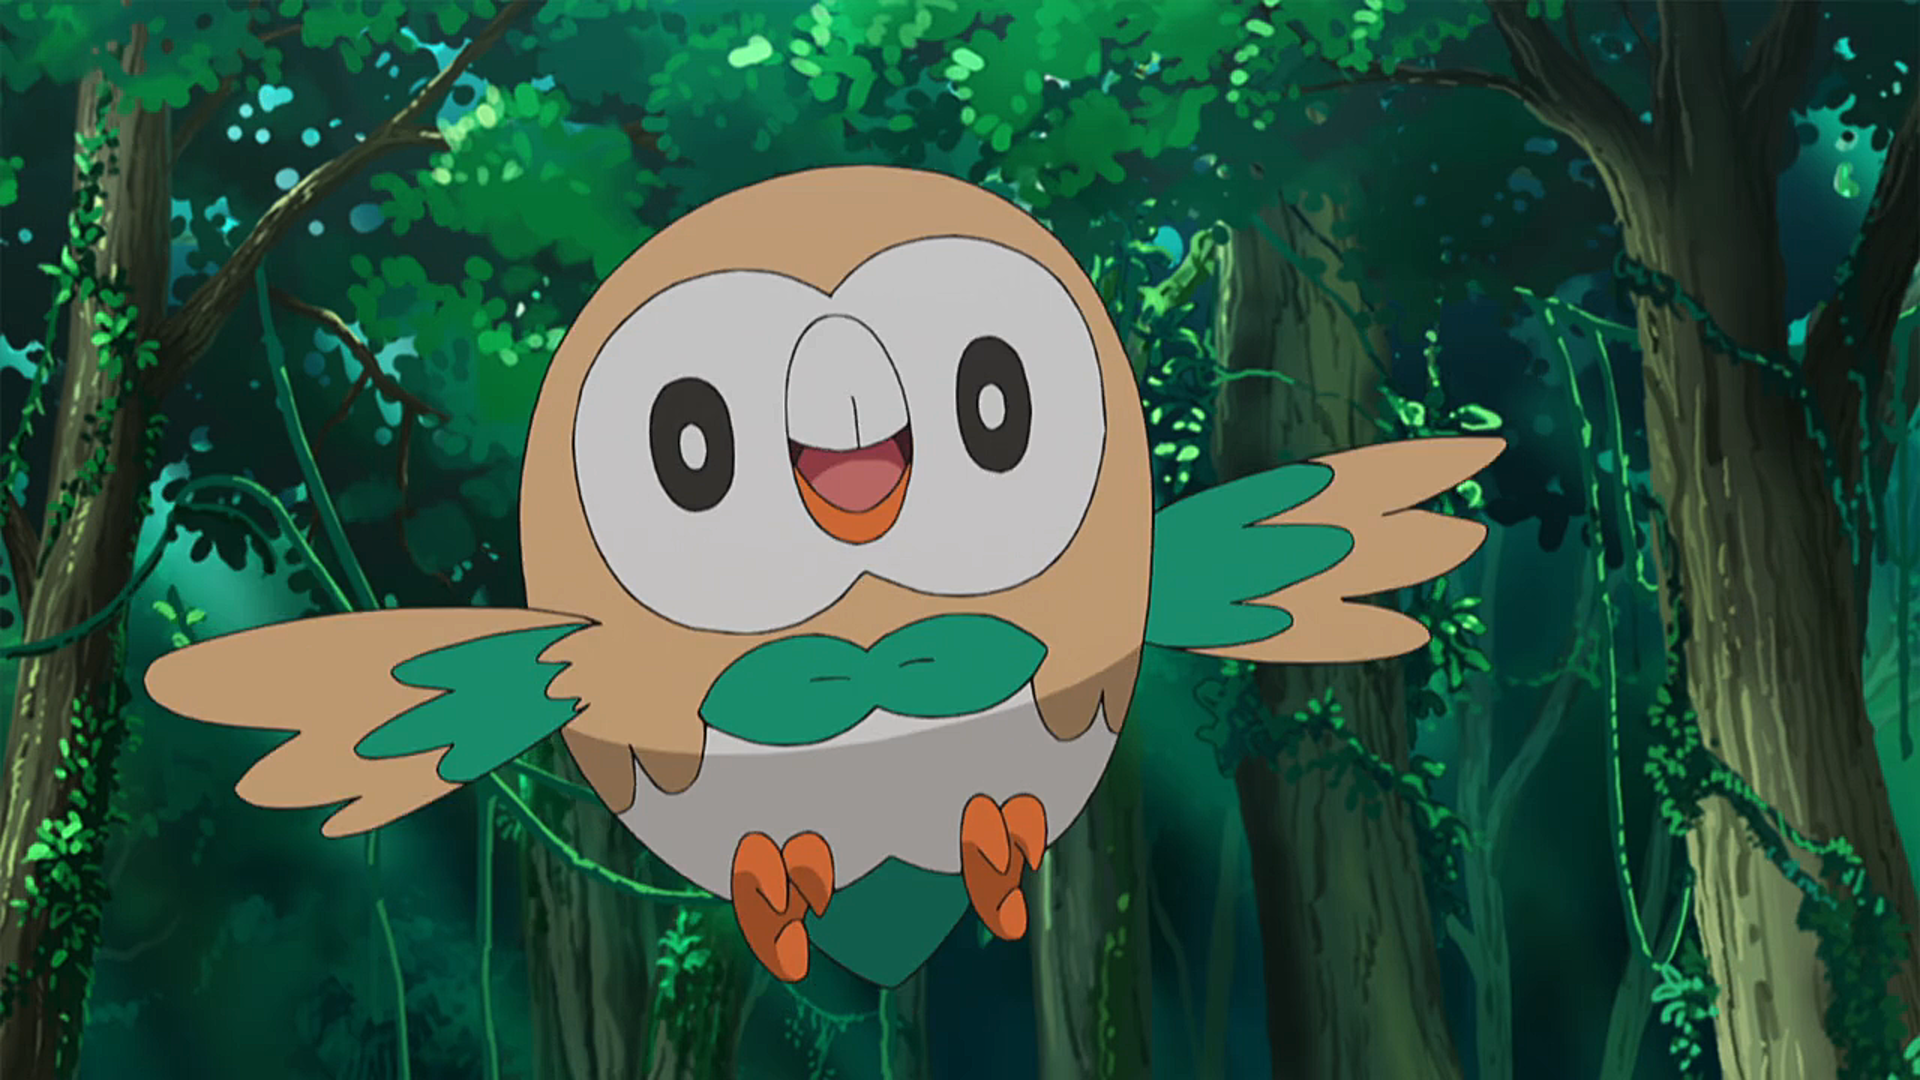 Ashs Rowlet Pokémon Wiki Fandom Powered By Wikia